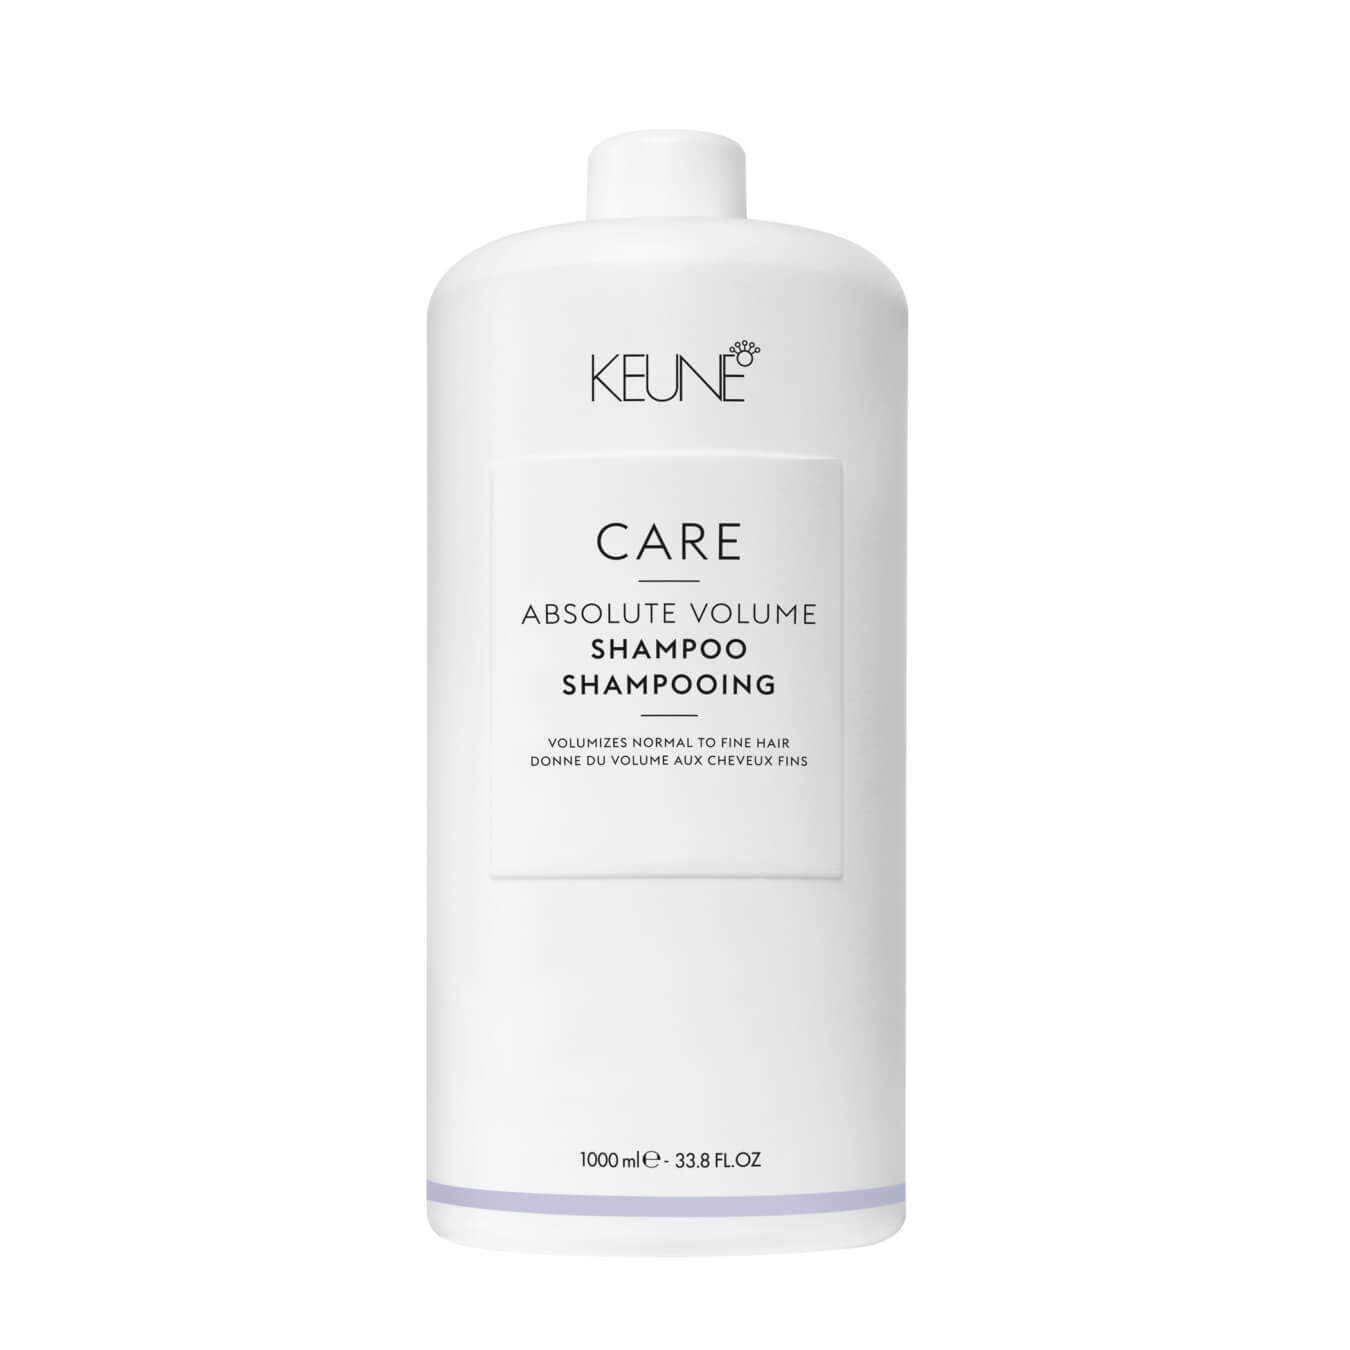 Koop Keune Care Absolute Volume Shampoo 1000ml